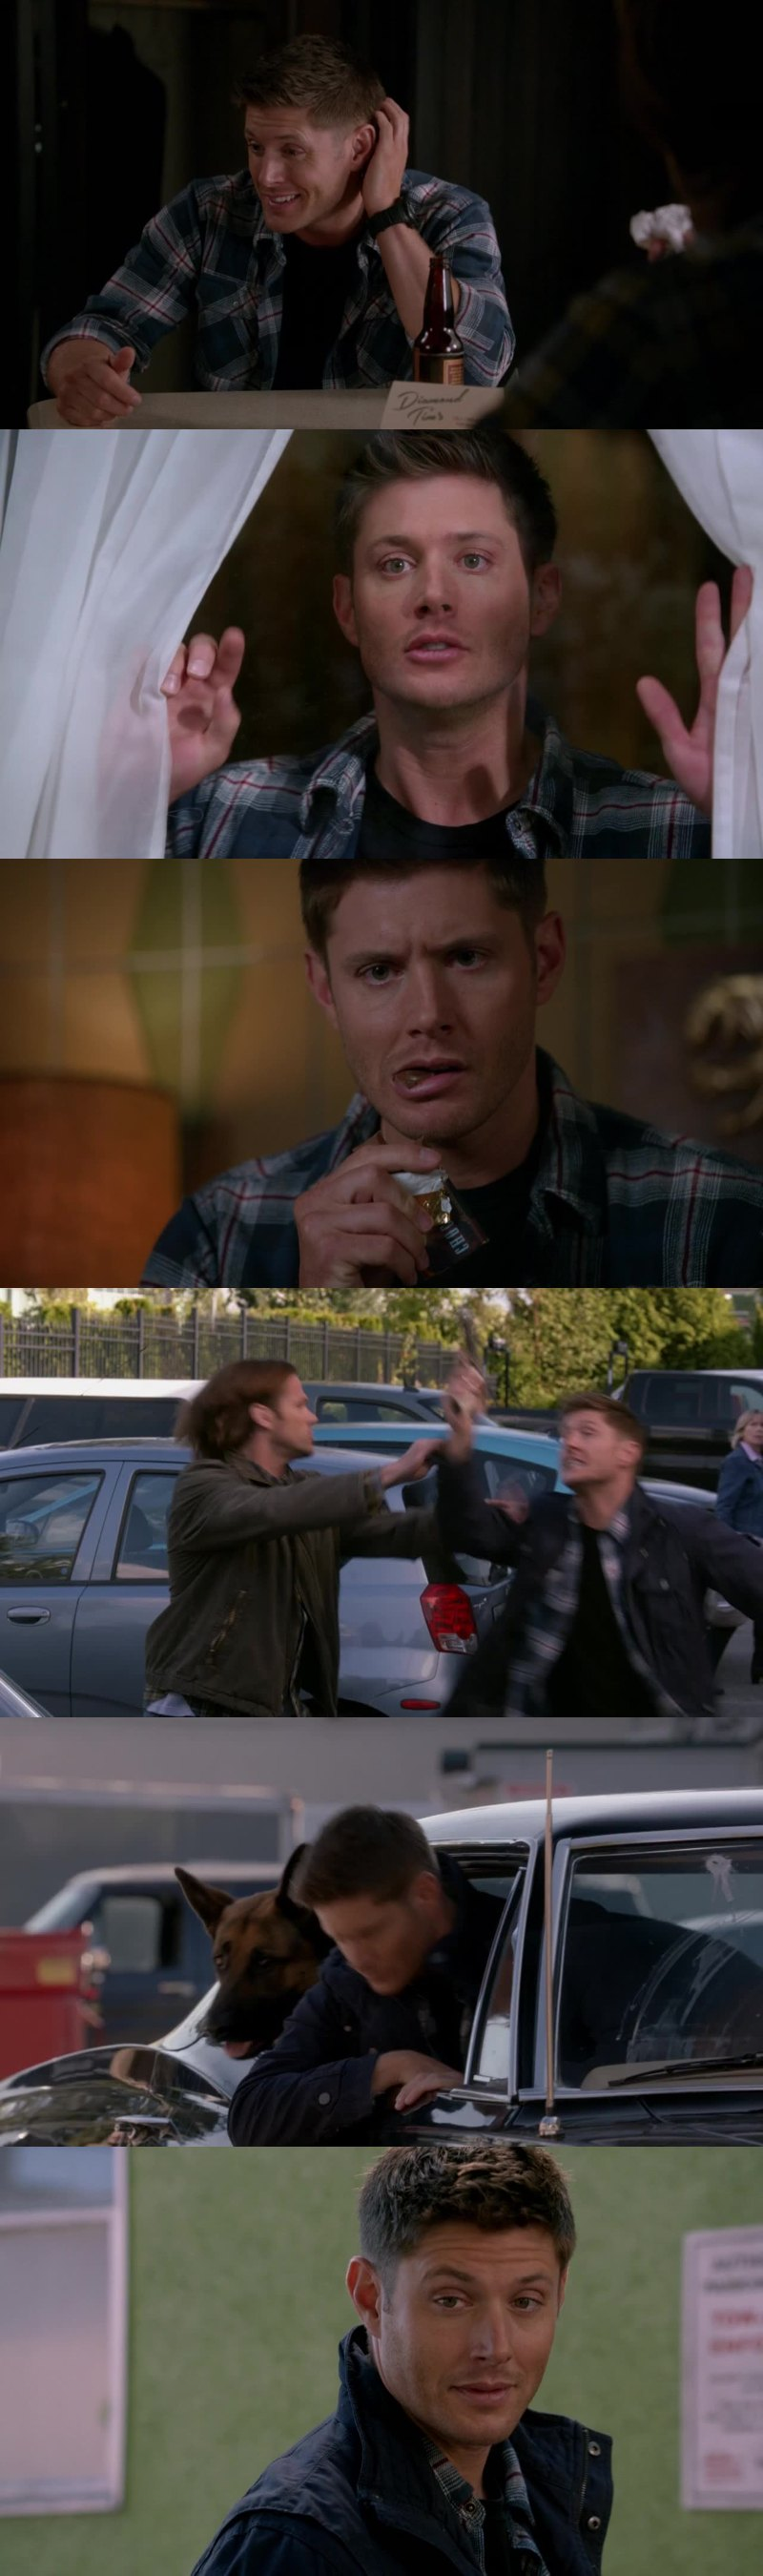 It's the only serie I know who affords episodes like this one... Ep who have no interest for the story but who are so funny! It's a part of what I love so much in this show! And Dean as a dog is awesome! 😂